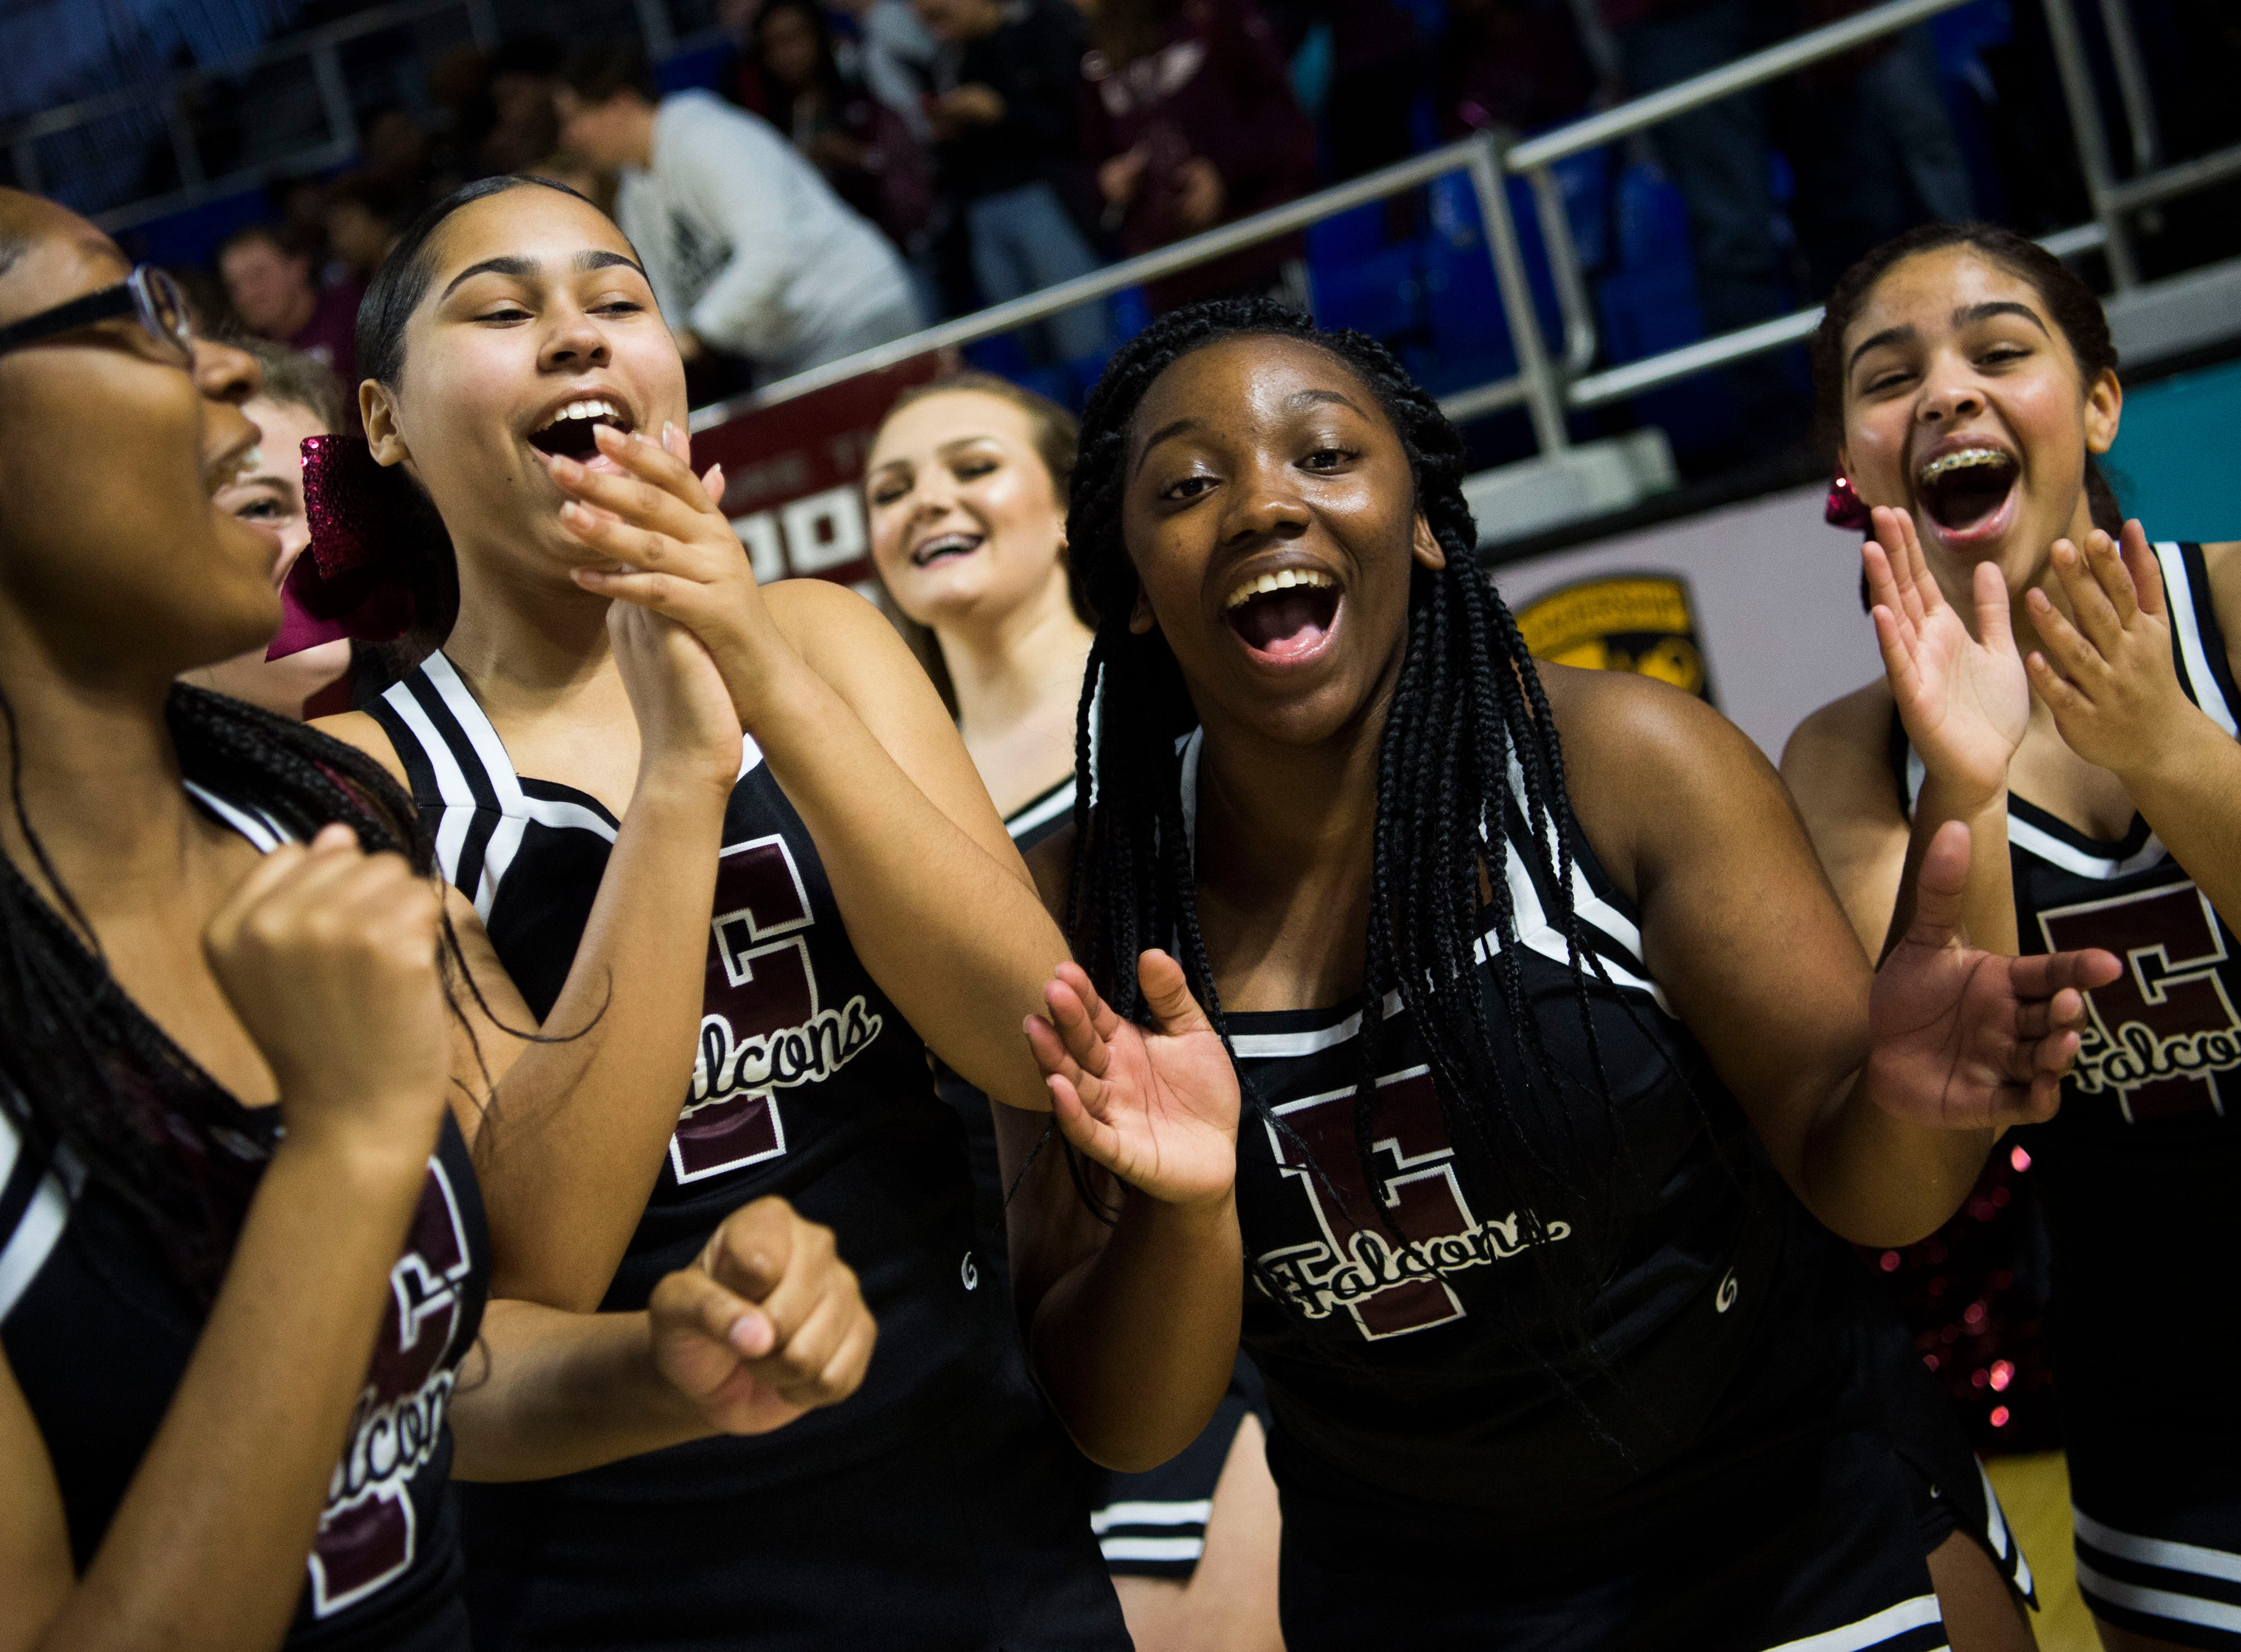 Fulton cheerleaders celebrate after a TSSAA AA state semifinal game between East Nashville and Fulton at the Murphy Center in Murfreesboro, Friday, March 15, 2019. Fulton defeated East Nashville 66-55.